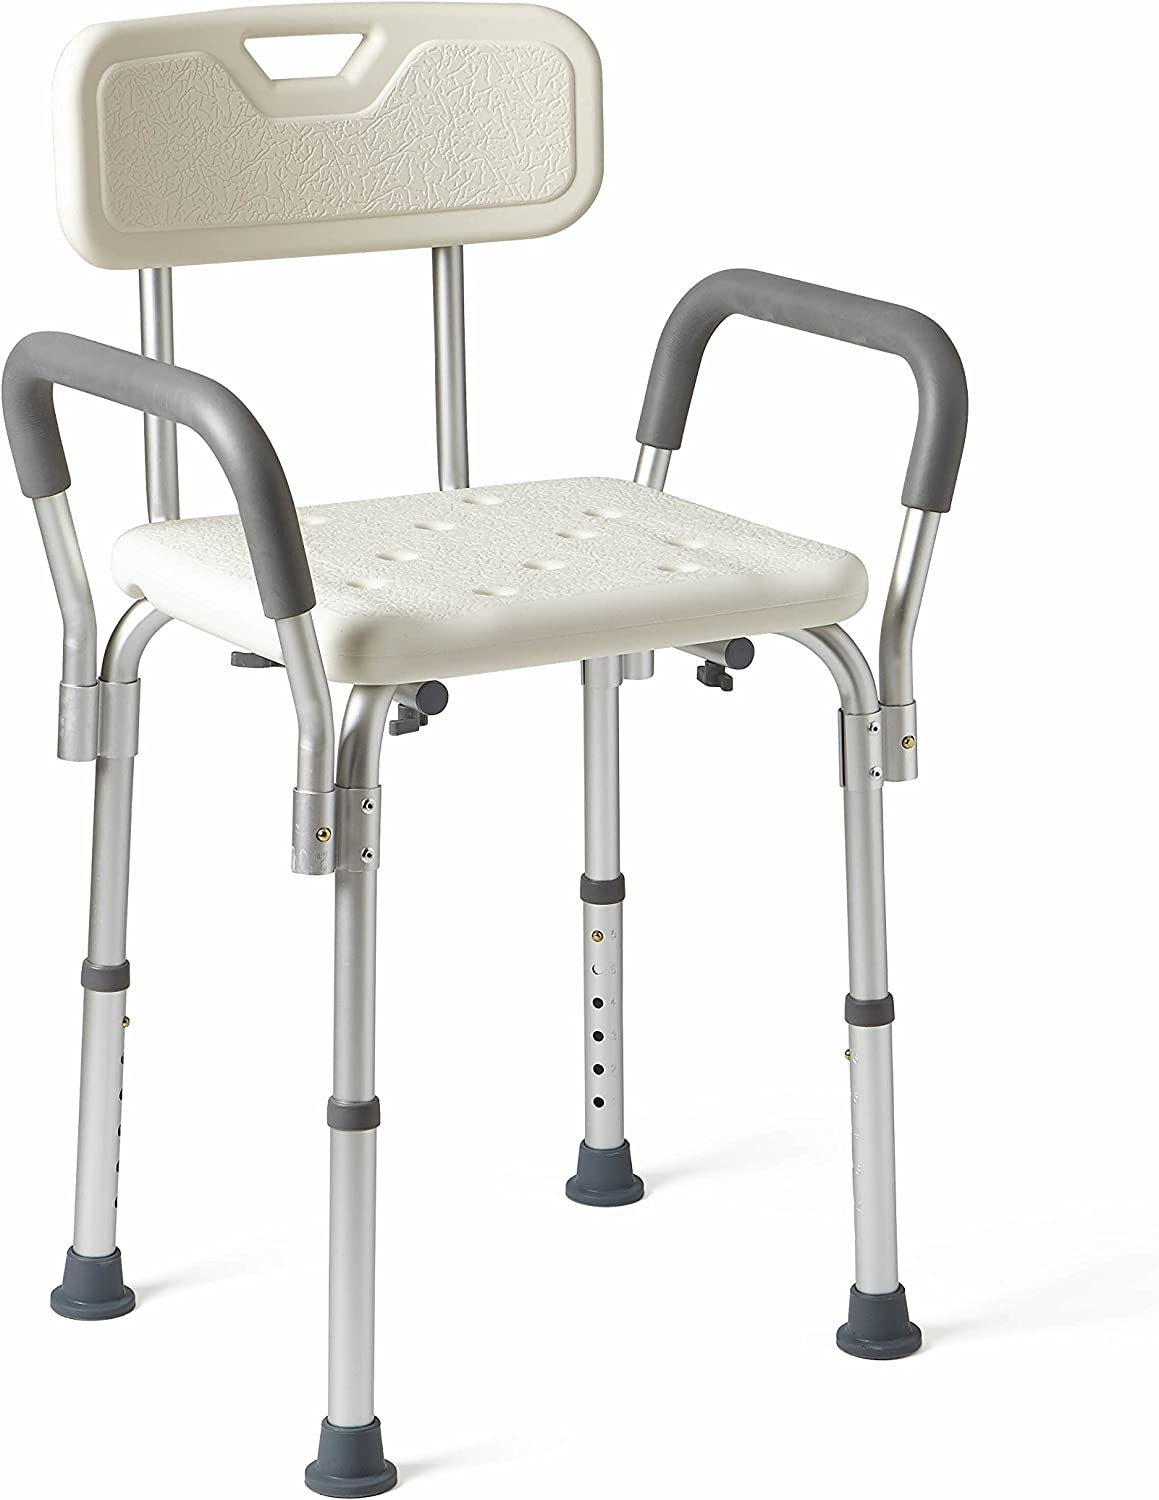 Medline Shower Chair Bath Seat with Padded Armrests and Back, Great for  Bathtubs, Supports up to 5 lbs